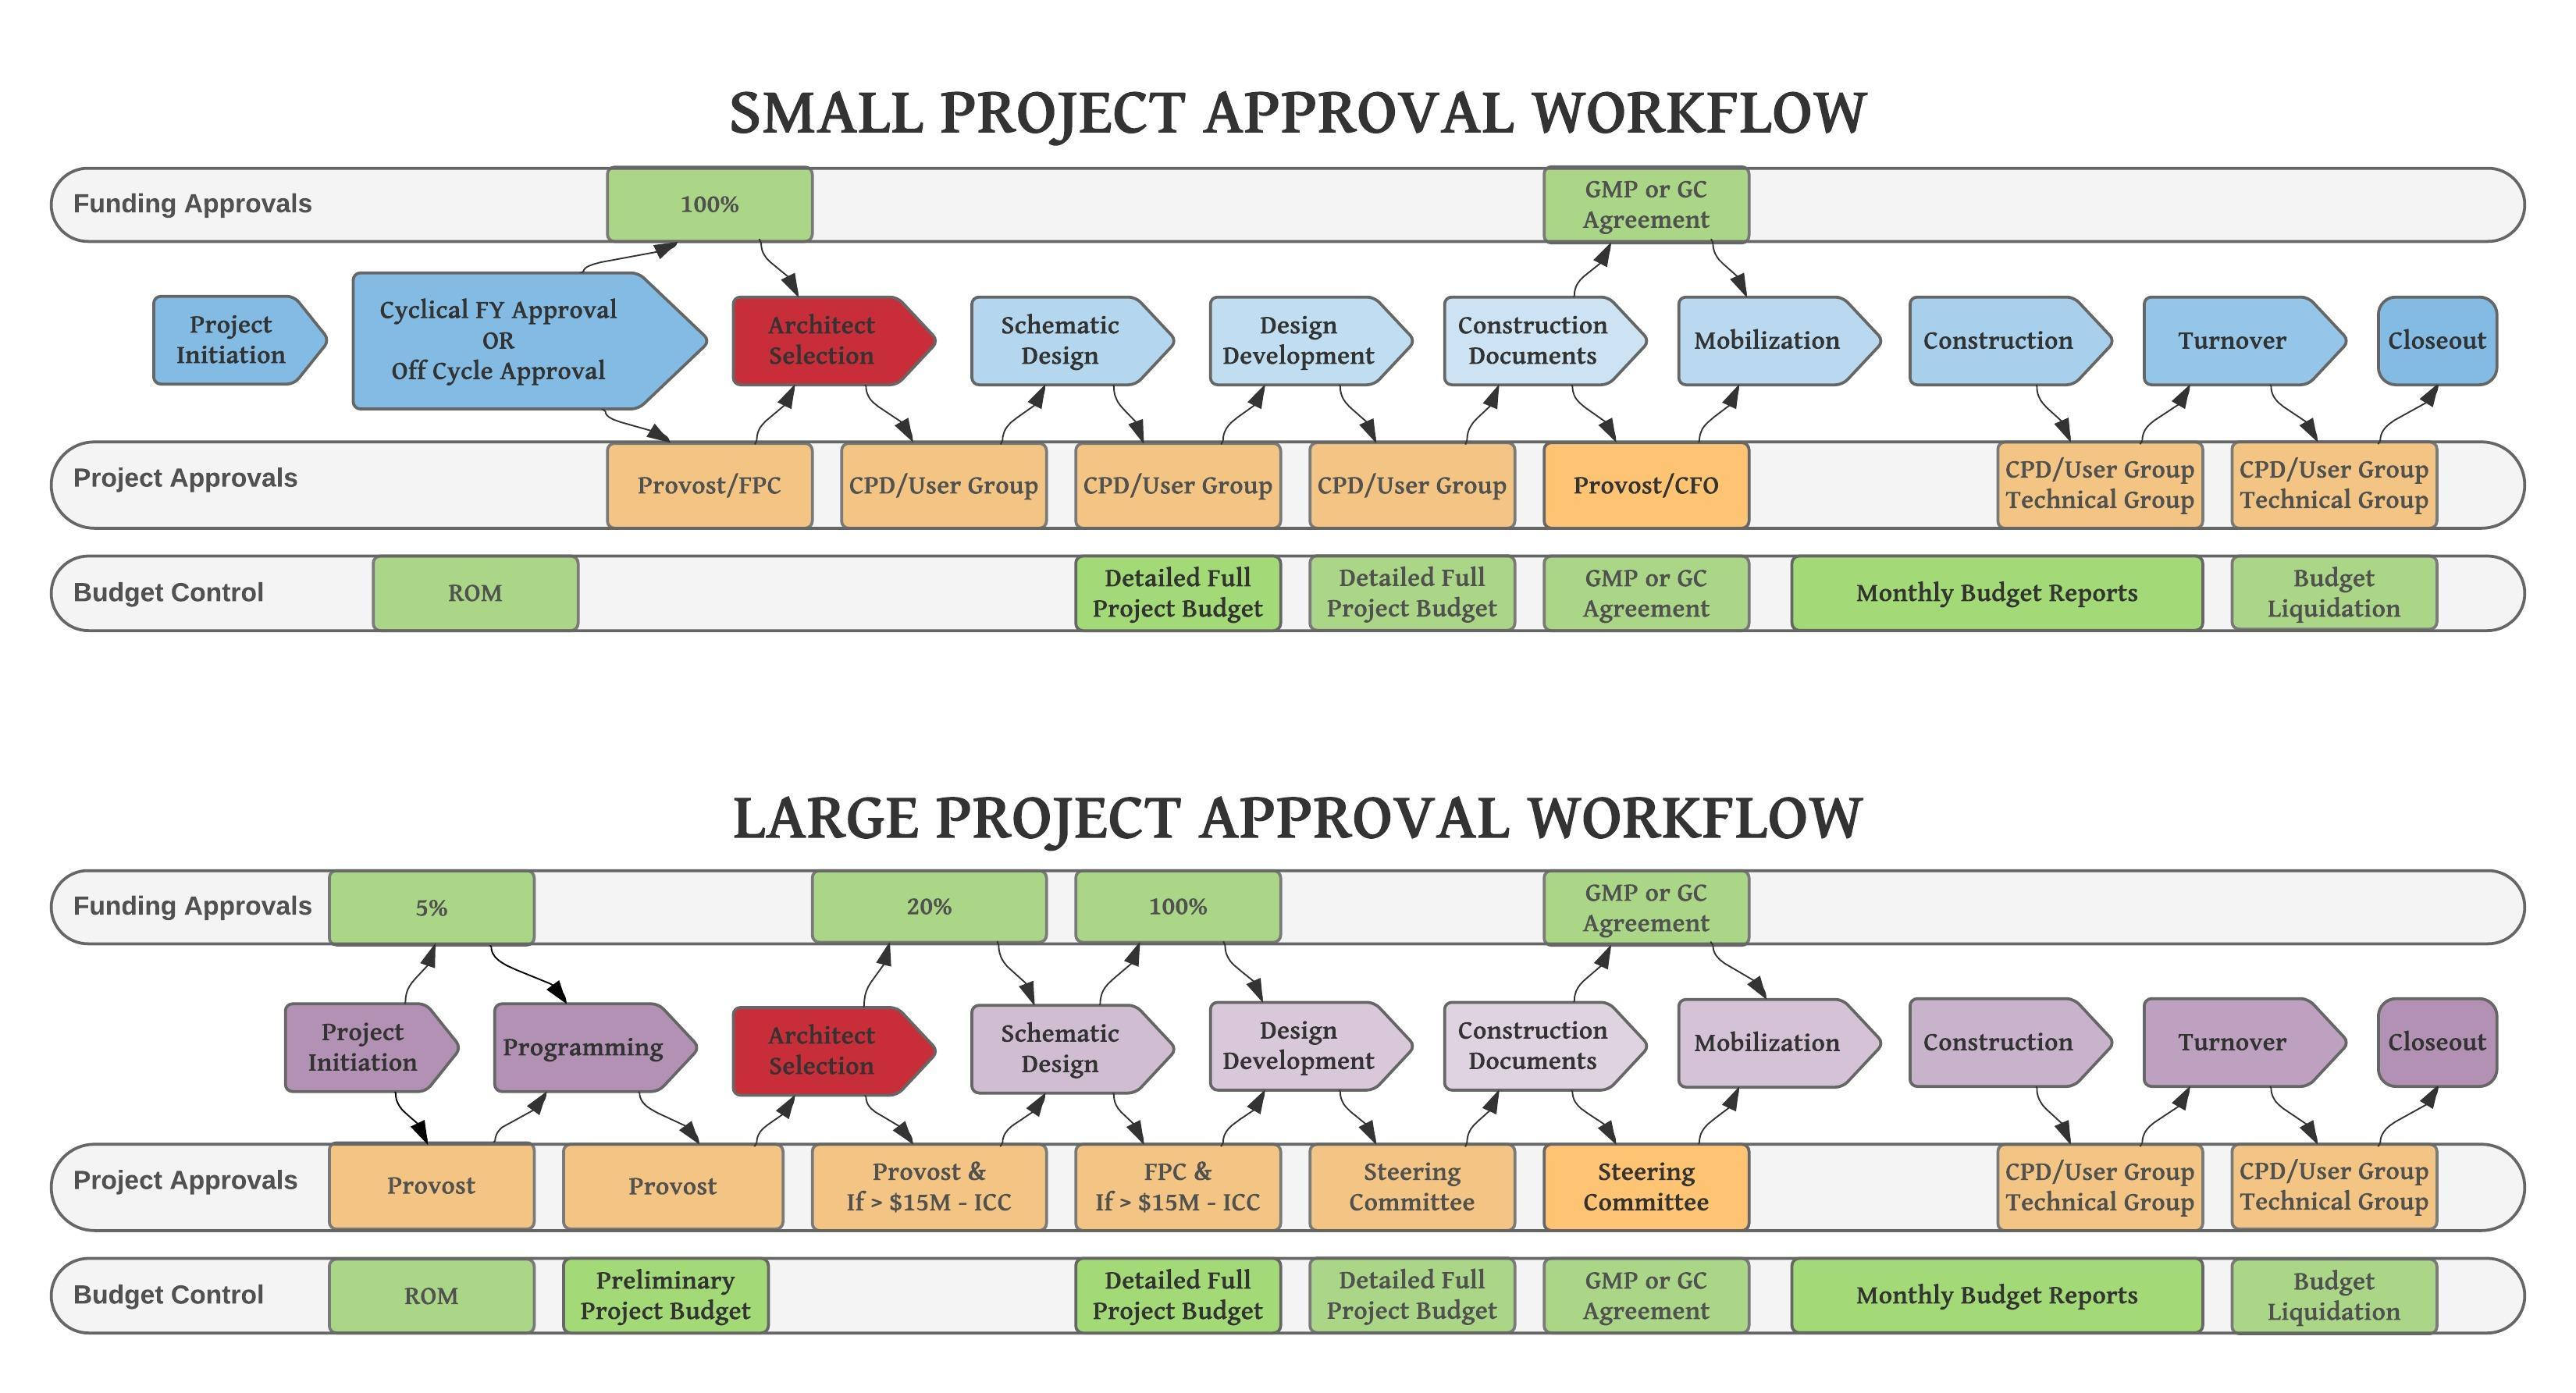 Architect Selection Approval Workflow